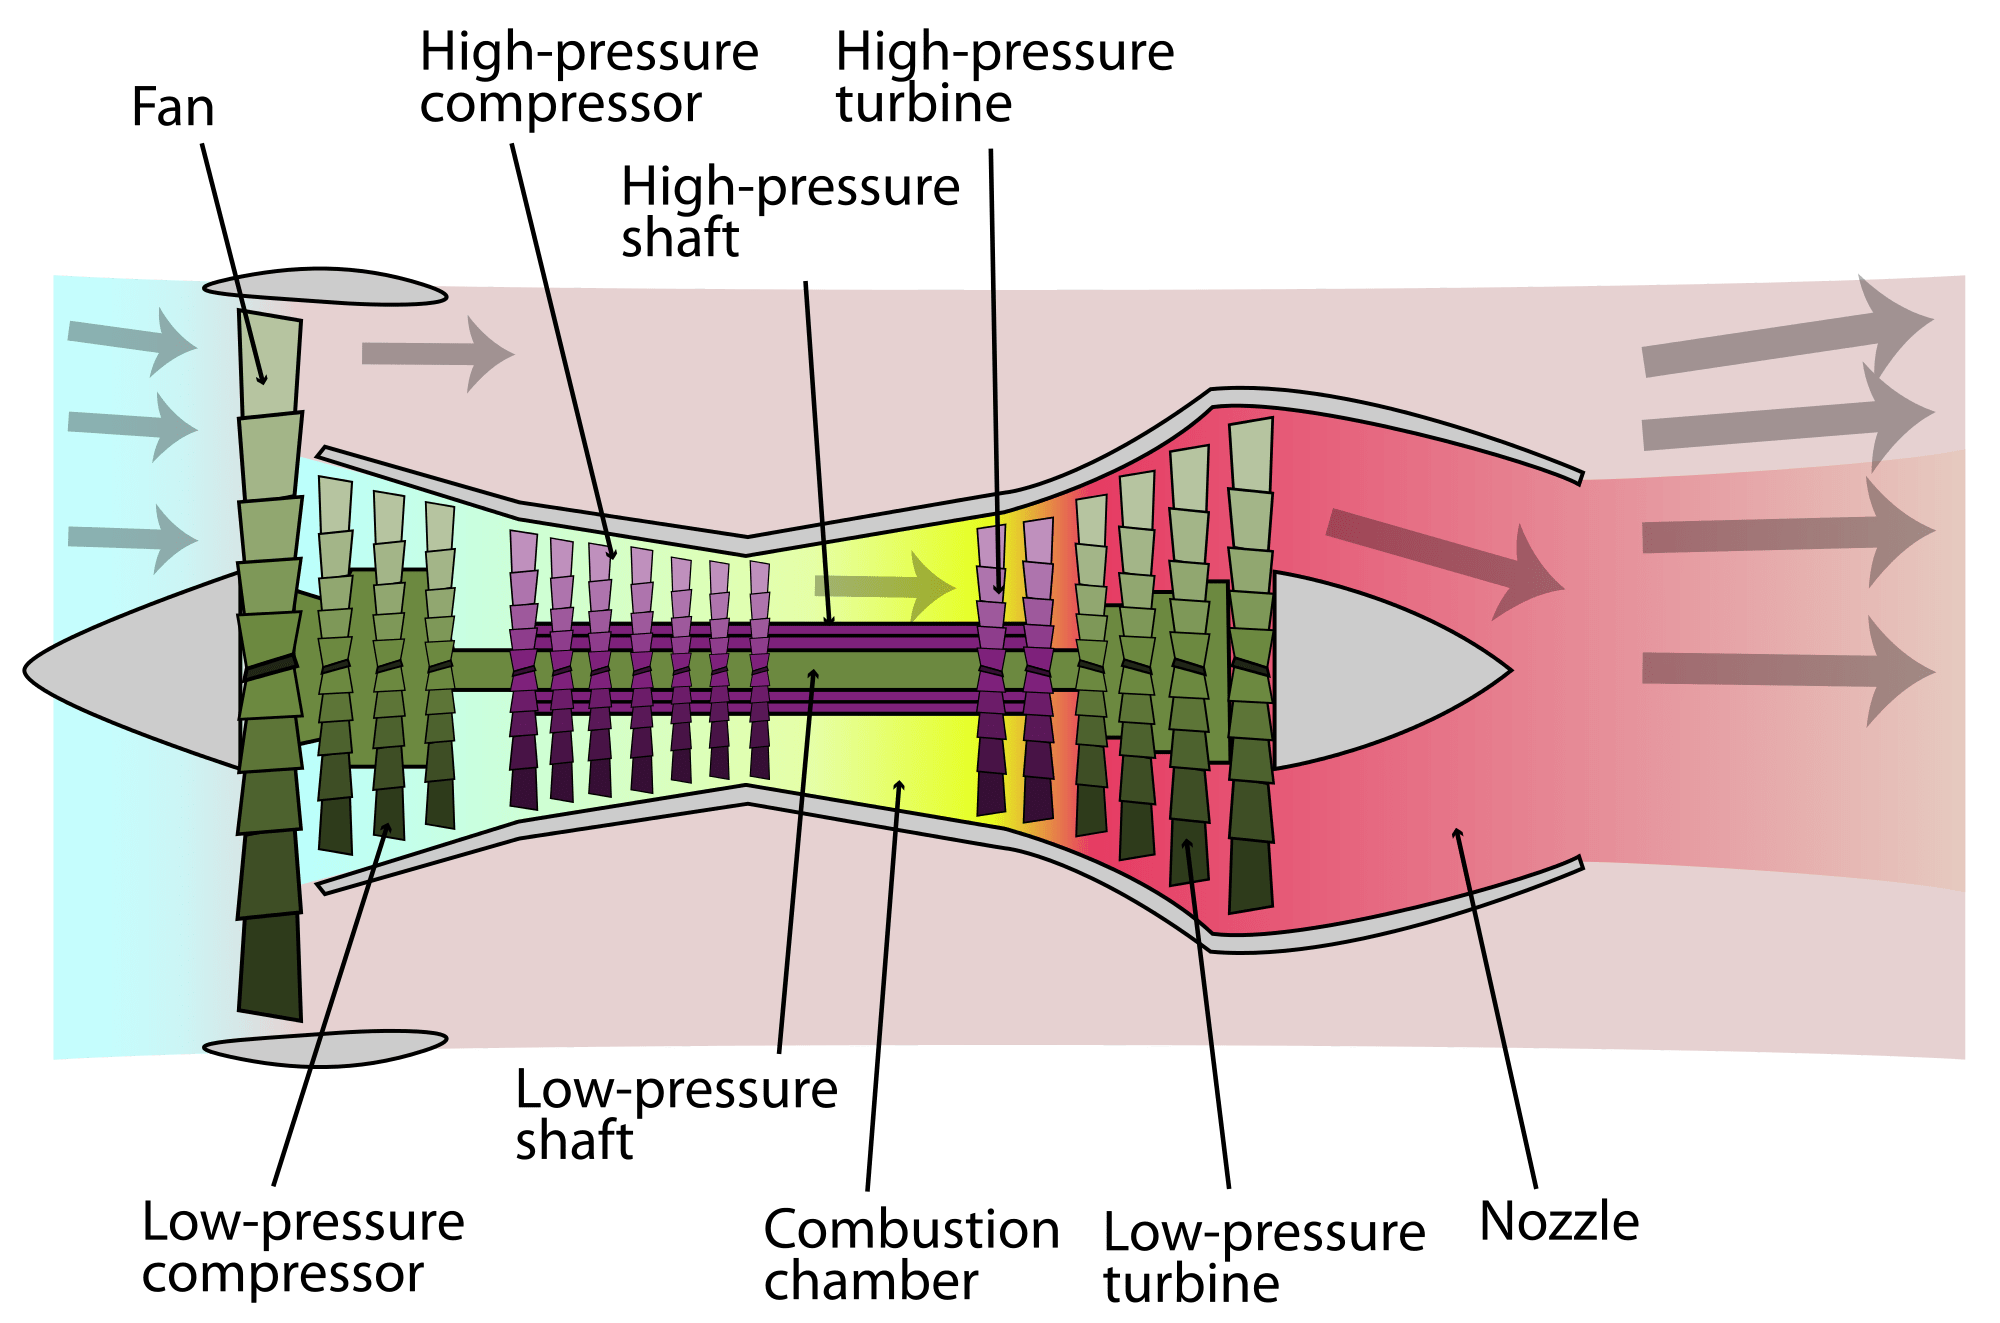 hight resolution of what material is used to make the hot sections of jet engines internal combustion engine diagram